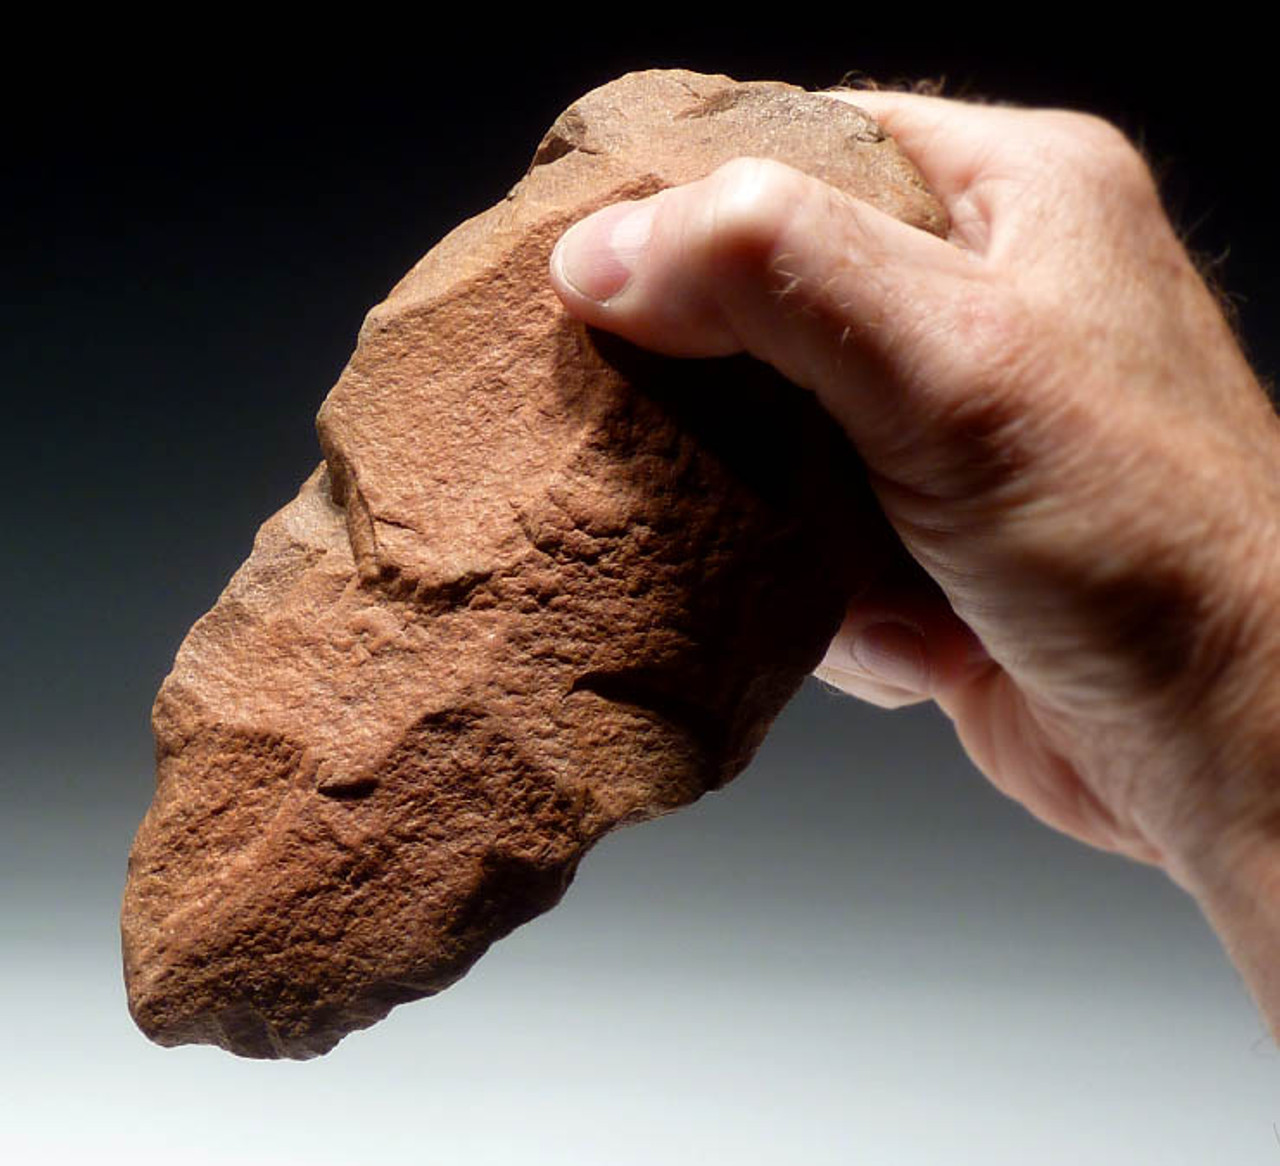 ACH171 - AFRICAN RED-ORANGE ACHEULIAN HANDAXE WITH MAGNIFICENT FORM AND FLAKING MADE BY HOMO ERGASTER (ERECTUS)